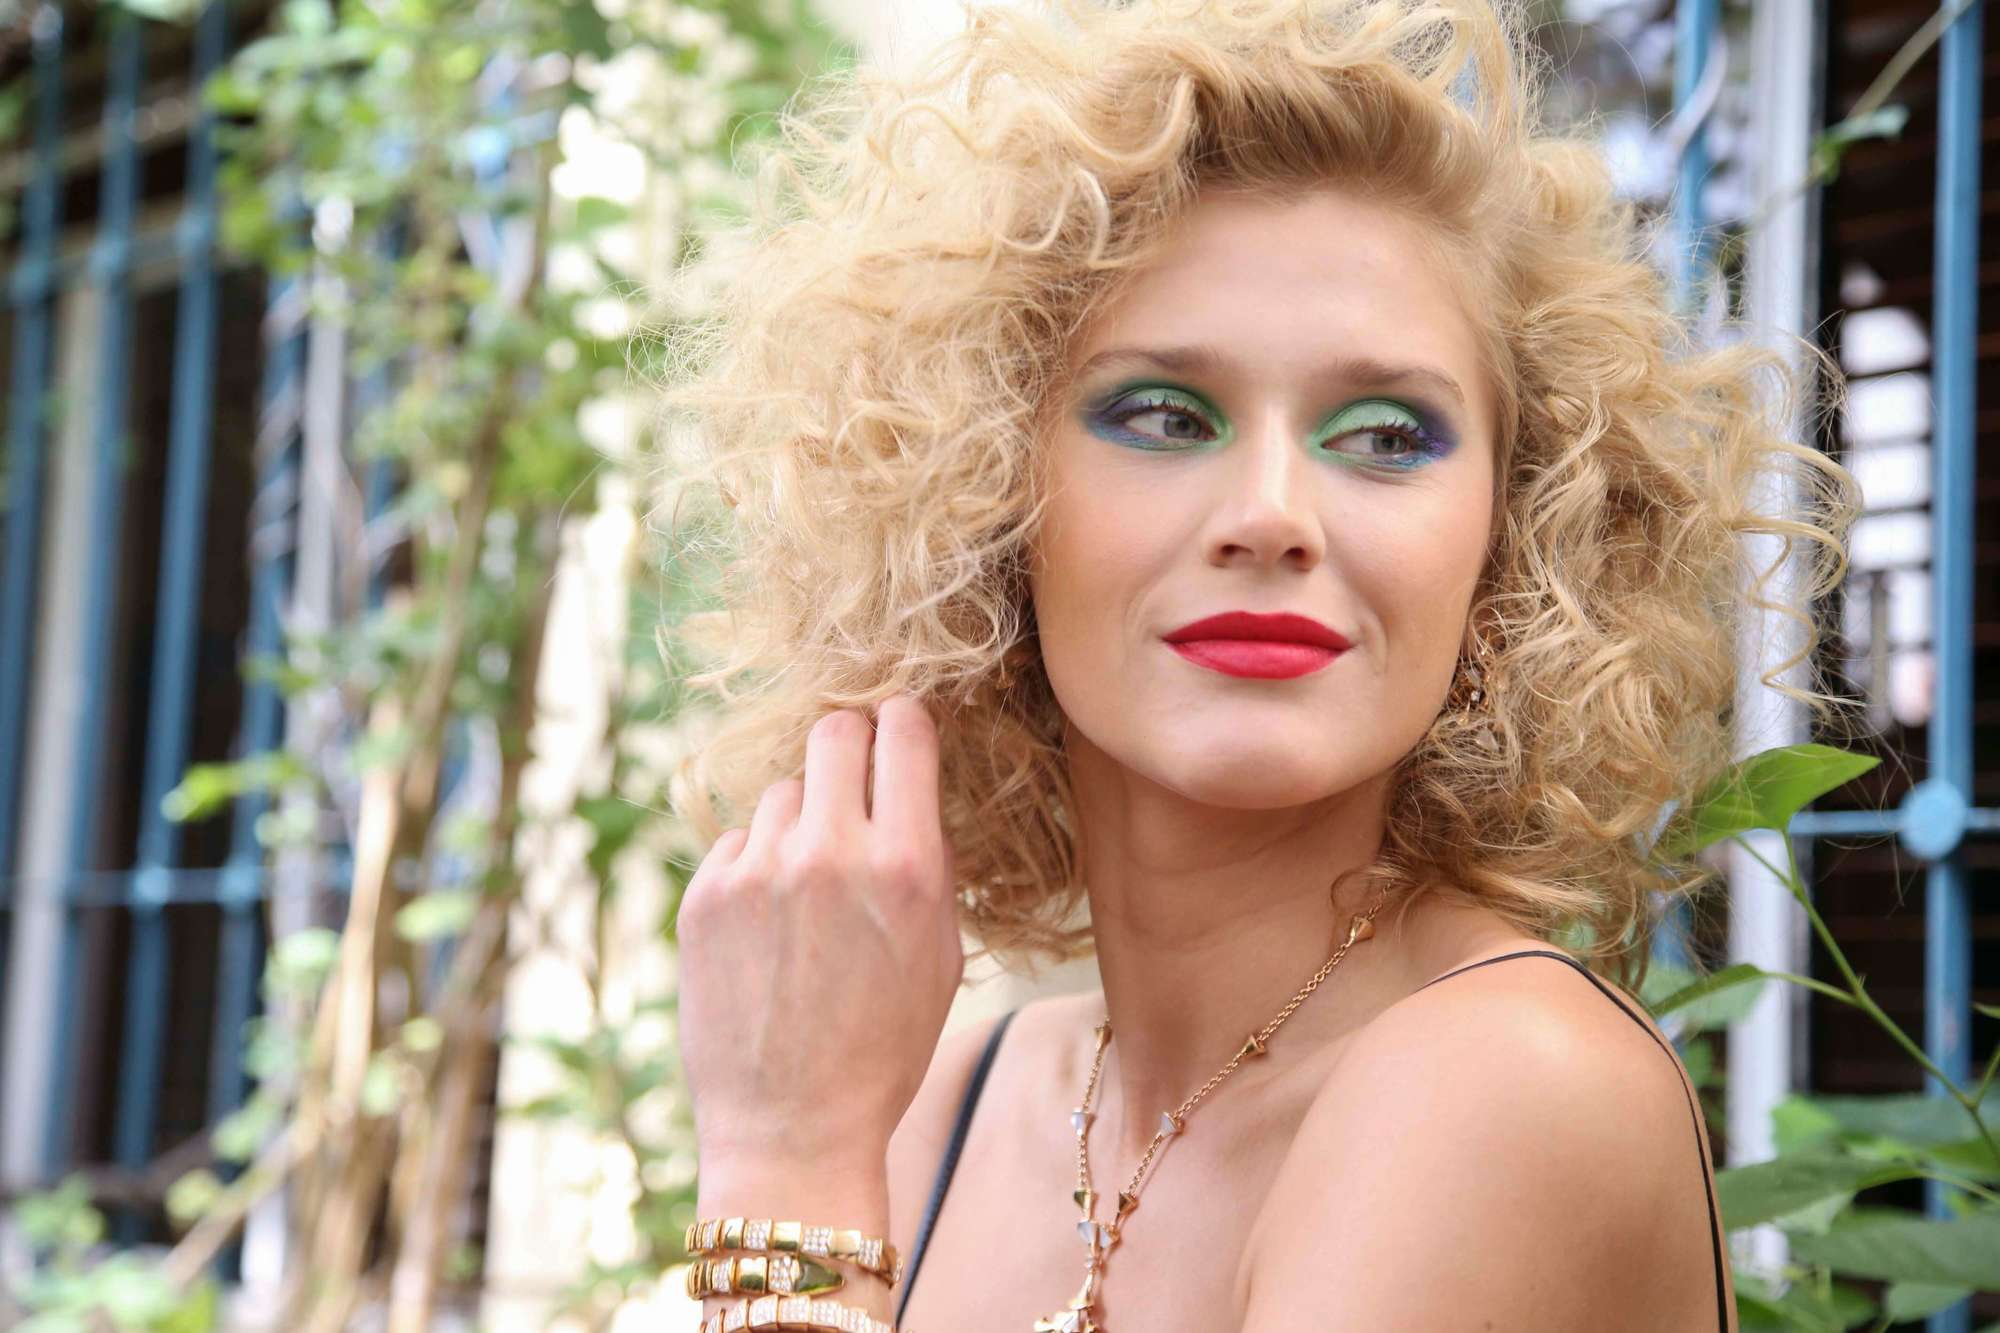 curly party hairstyles to wear this year, 80s volume